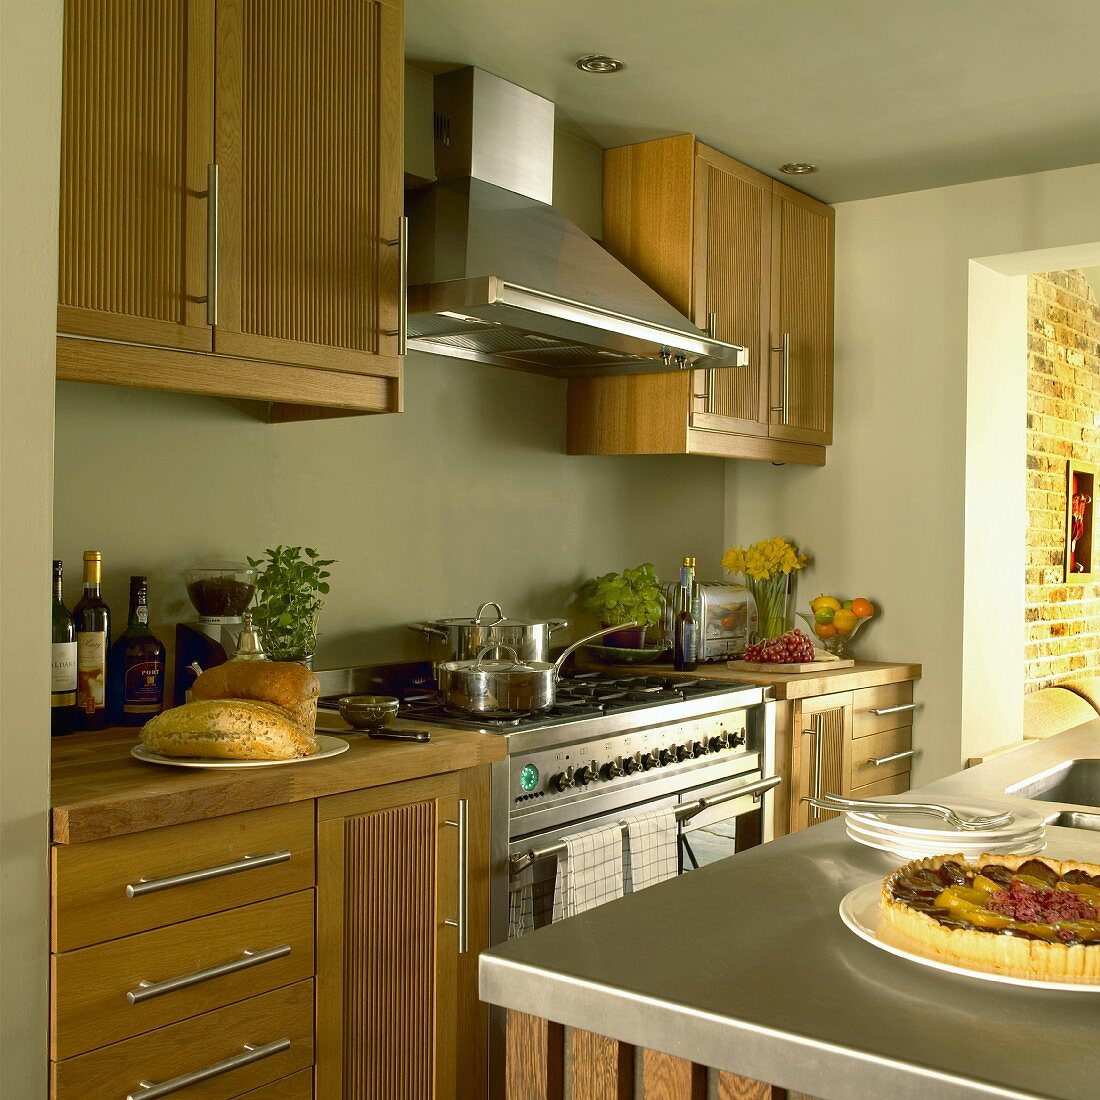 Country Home Style Kitchen With Pastel Buy Image 11193295 Living4media